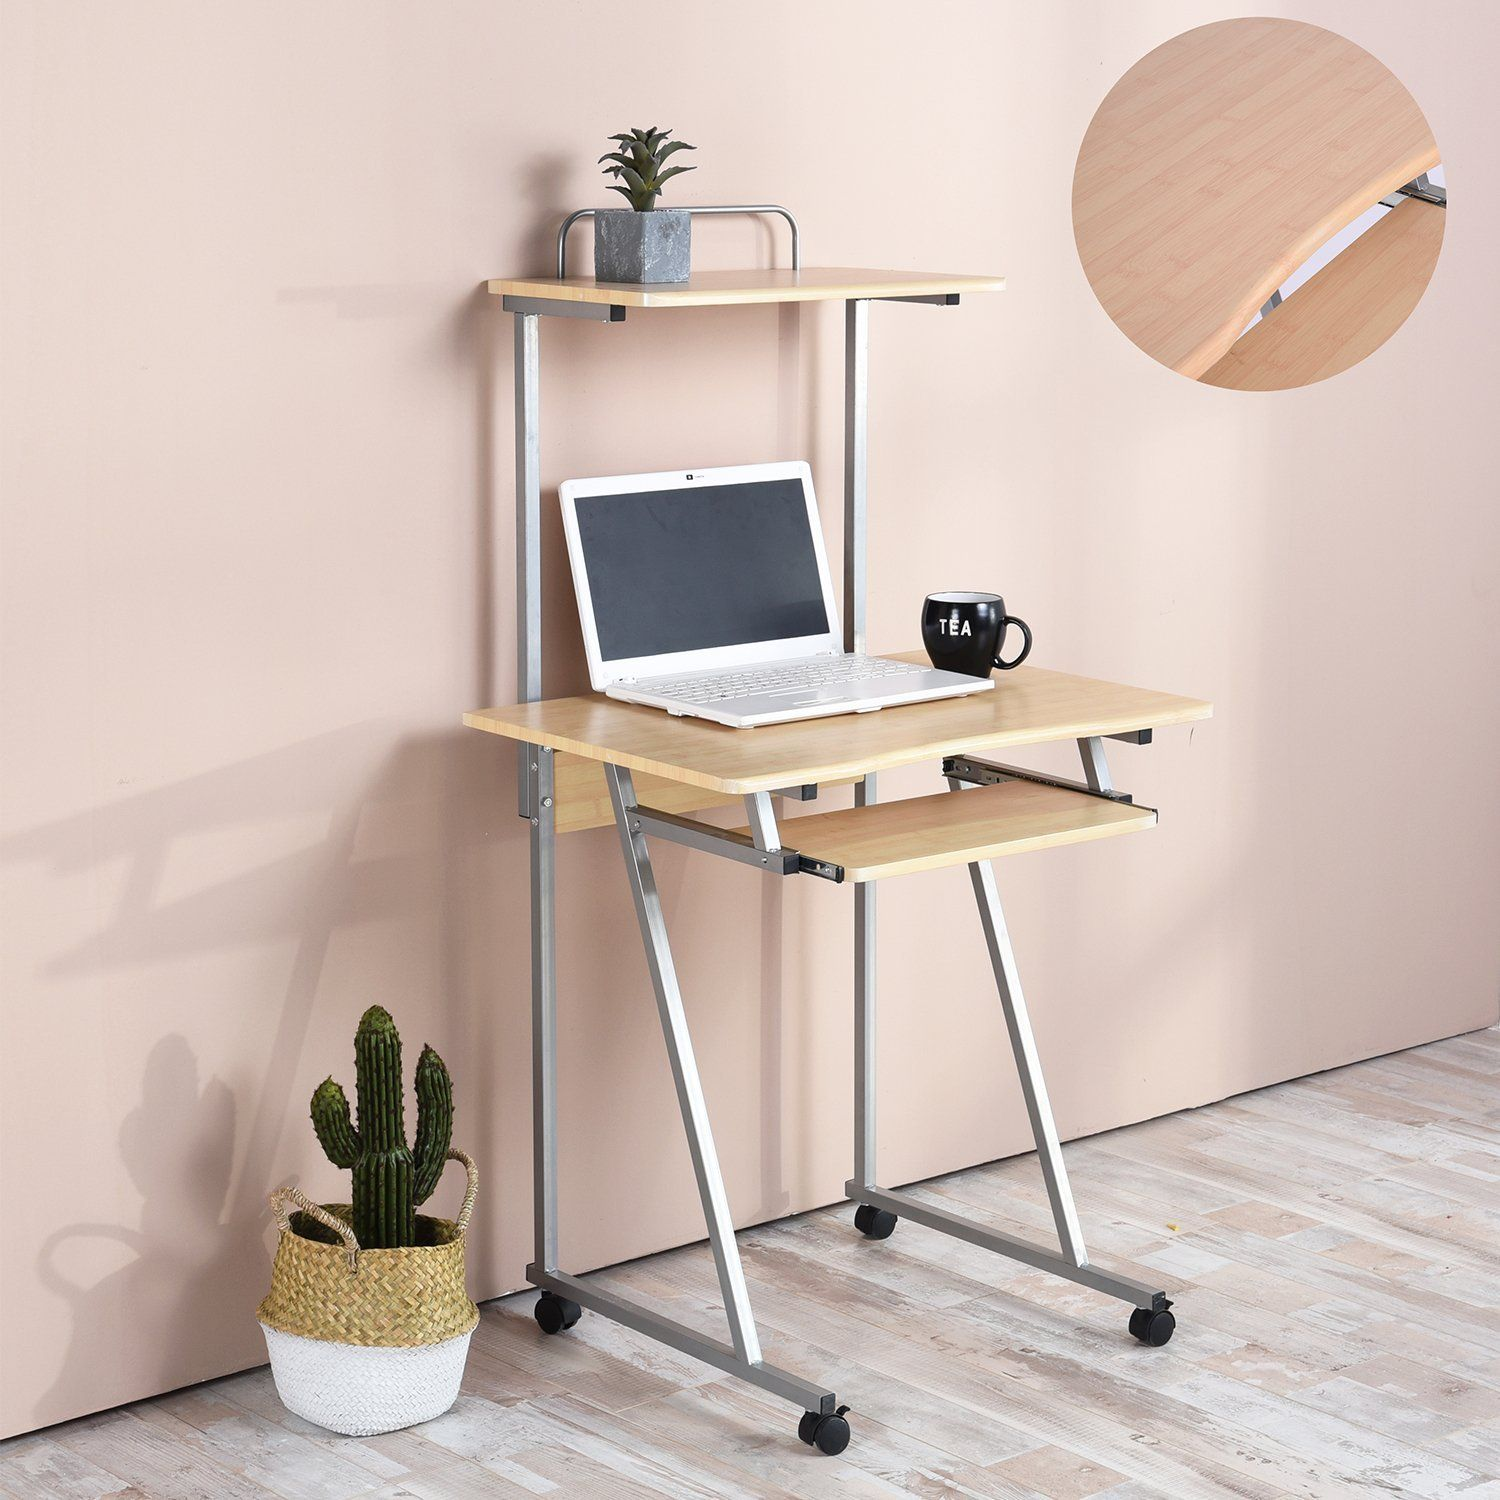 Astounding Amazon Com Aingoo Mobile Computer Desk Small Rolling Download Free Architecture Designs Scobabritishbridgeorg